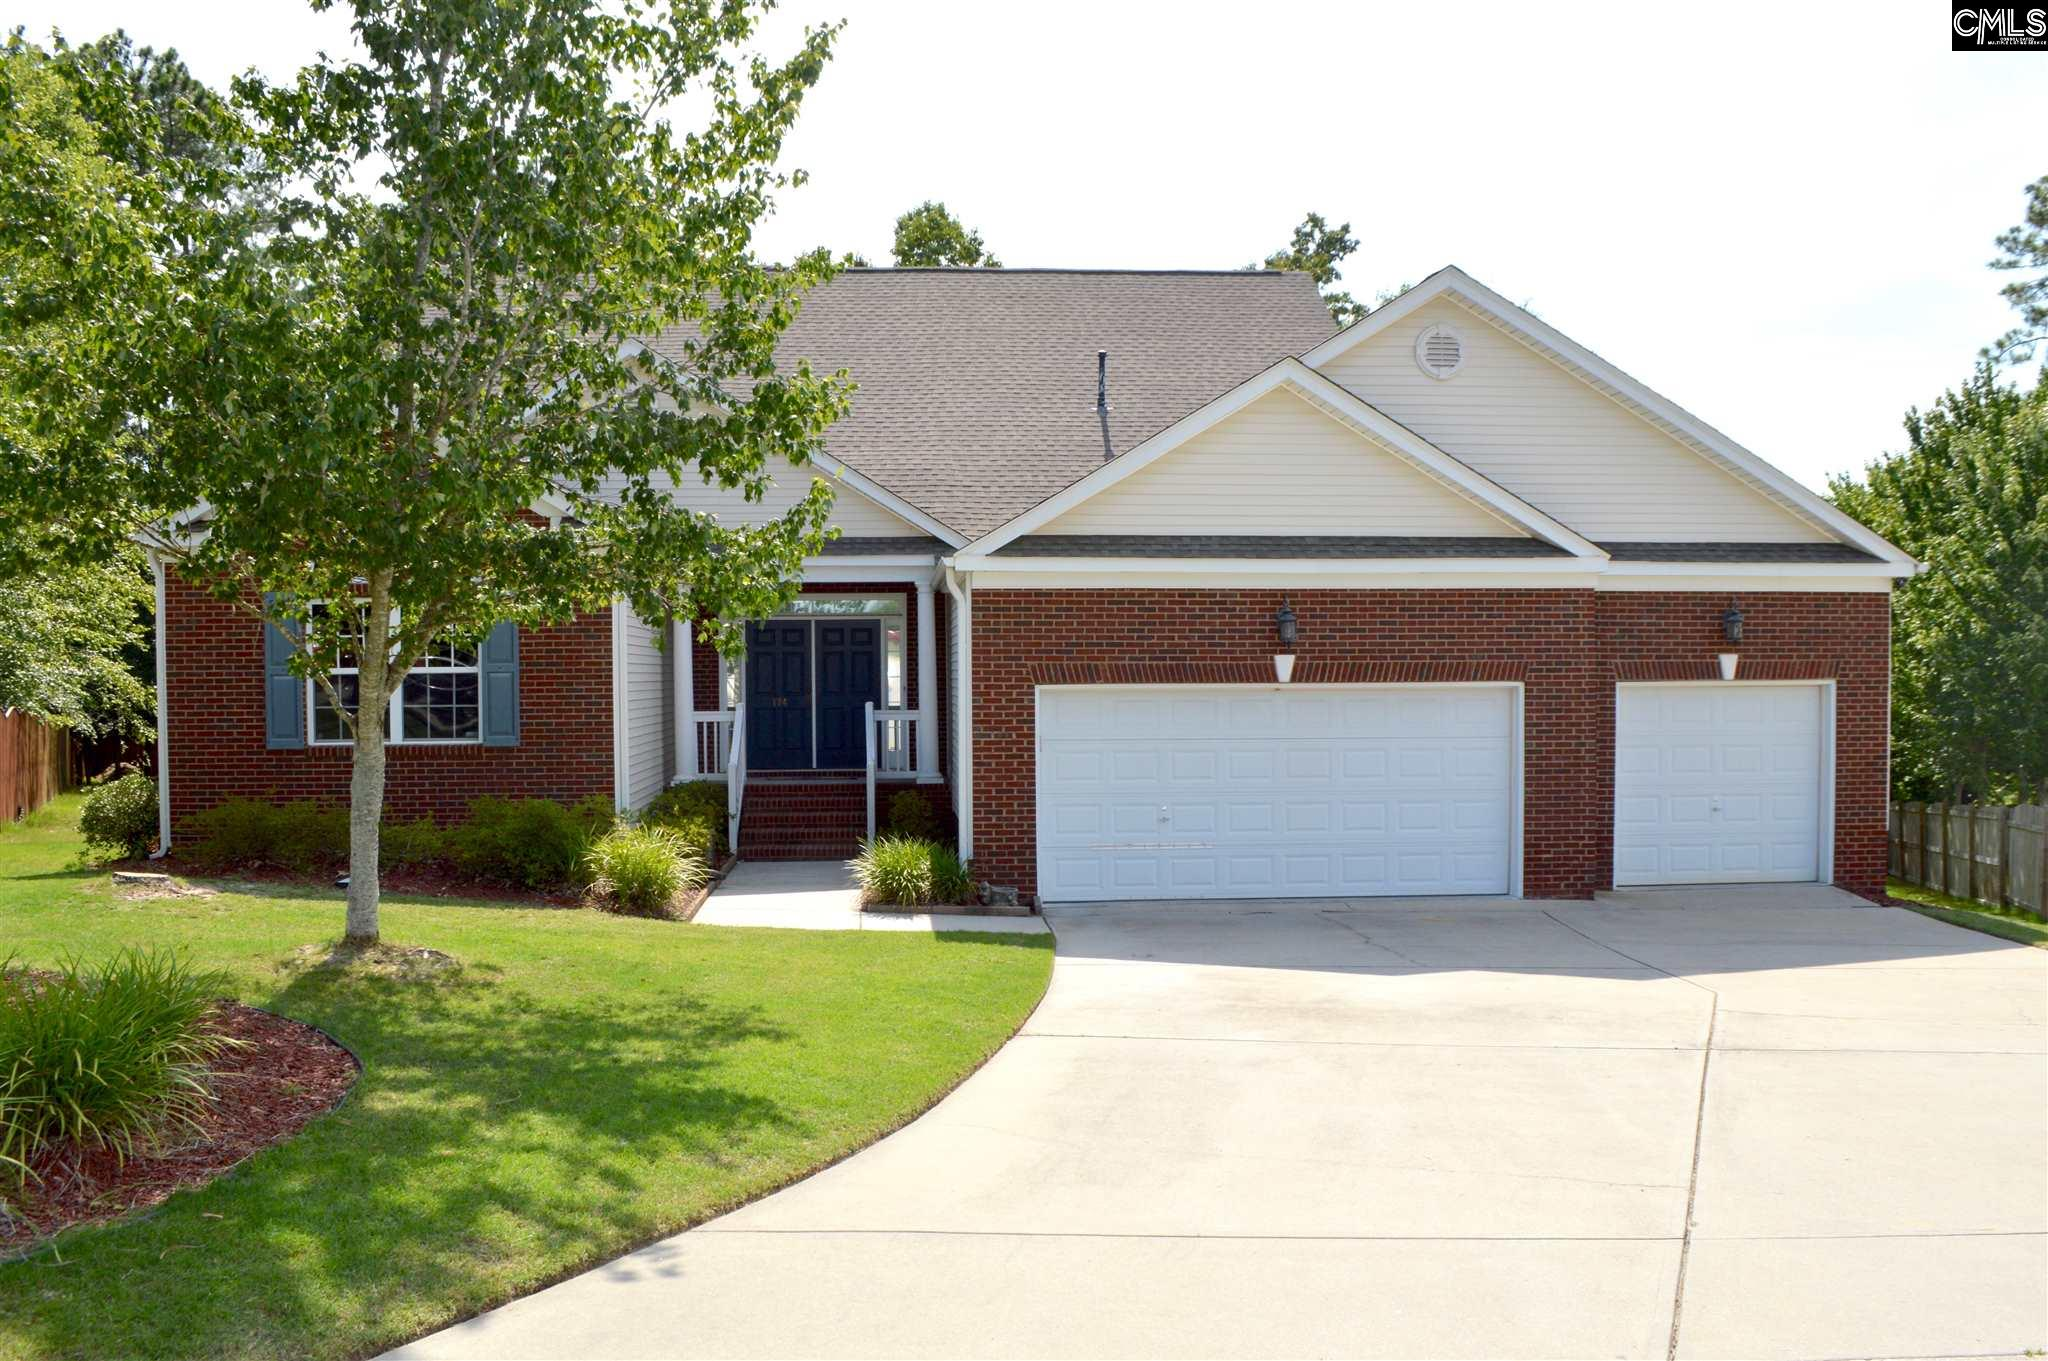 174 Millstone Lexington, SC 29072